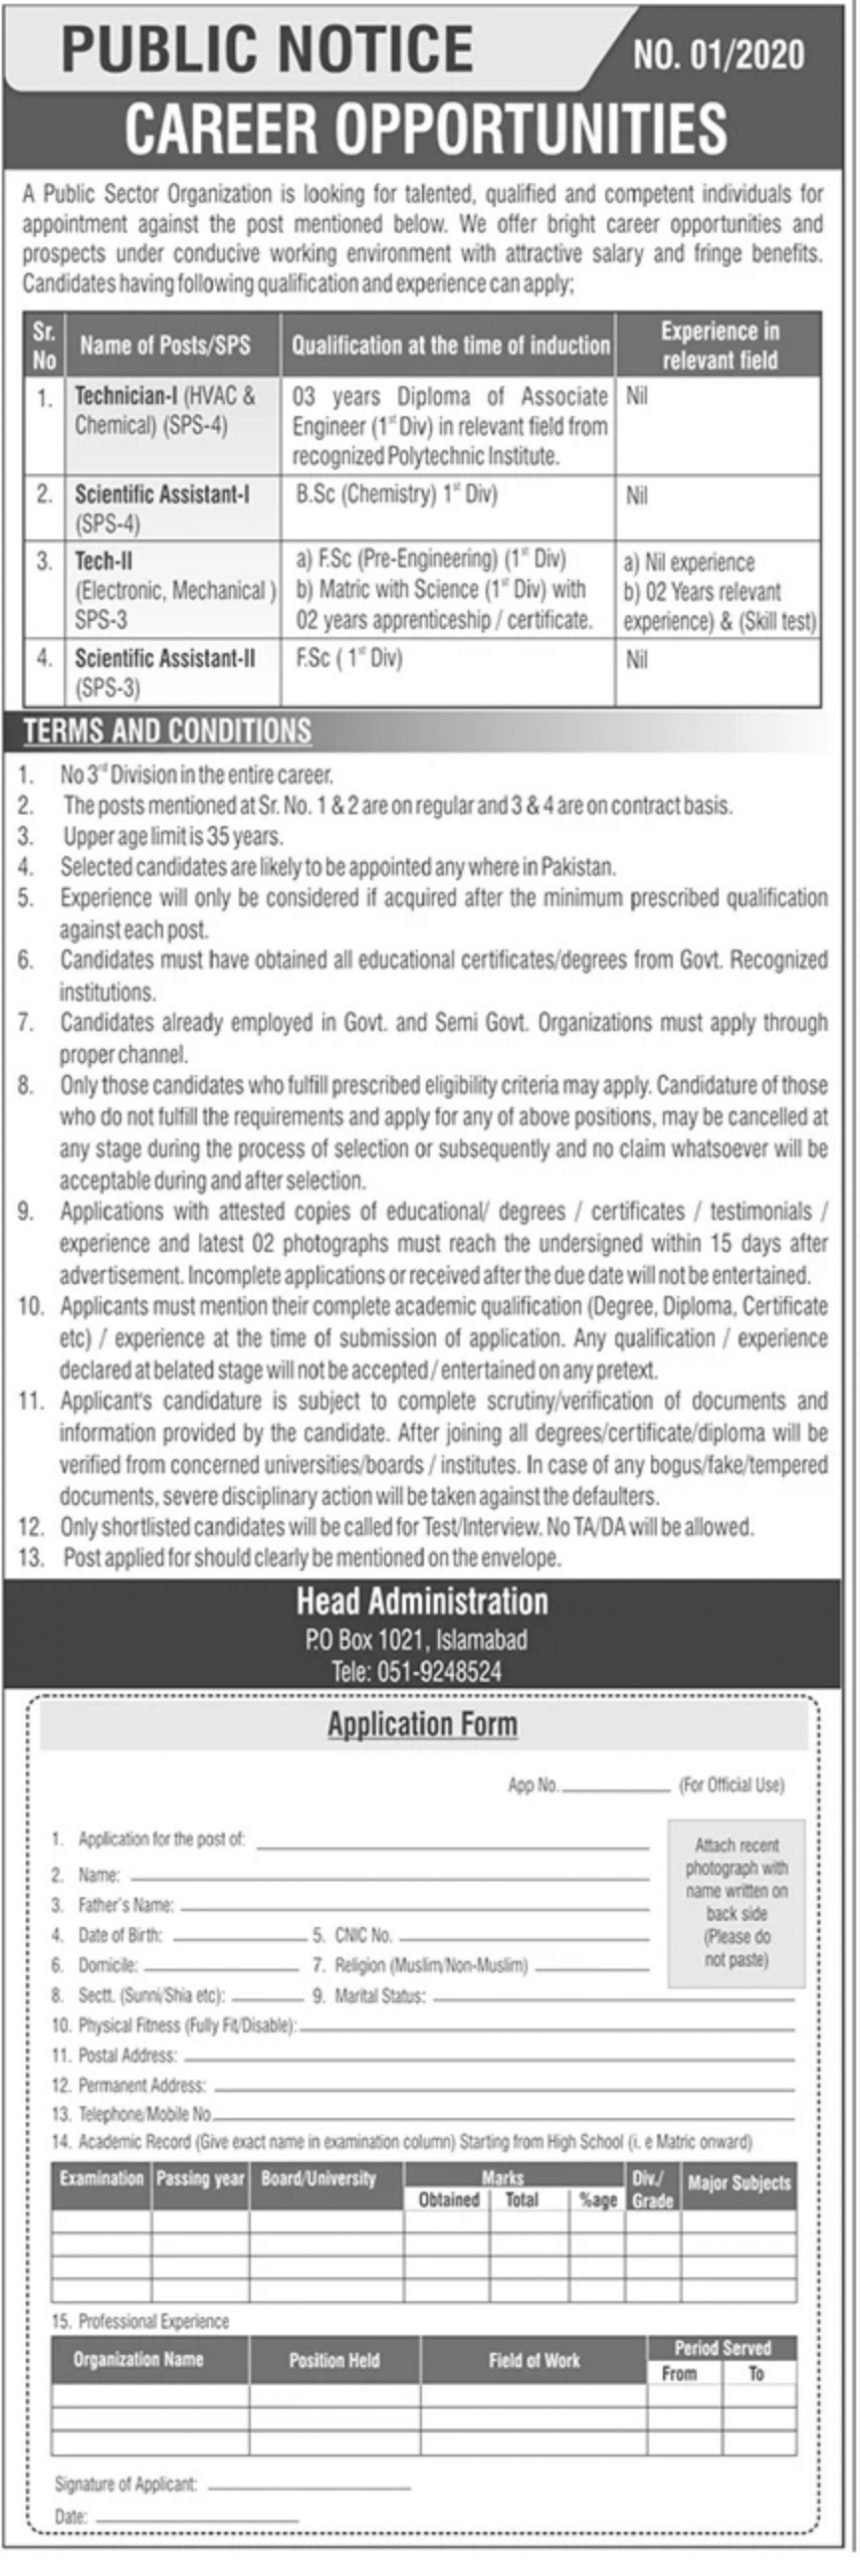 Public Sector Organization P.O.Box 1021 Islamabad Jobs October 2020